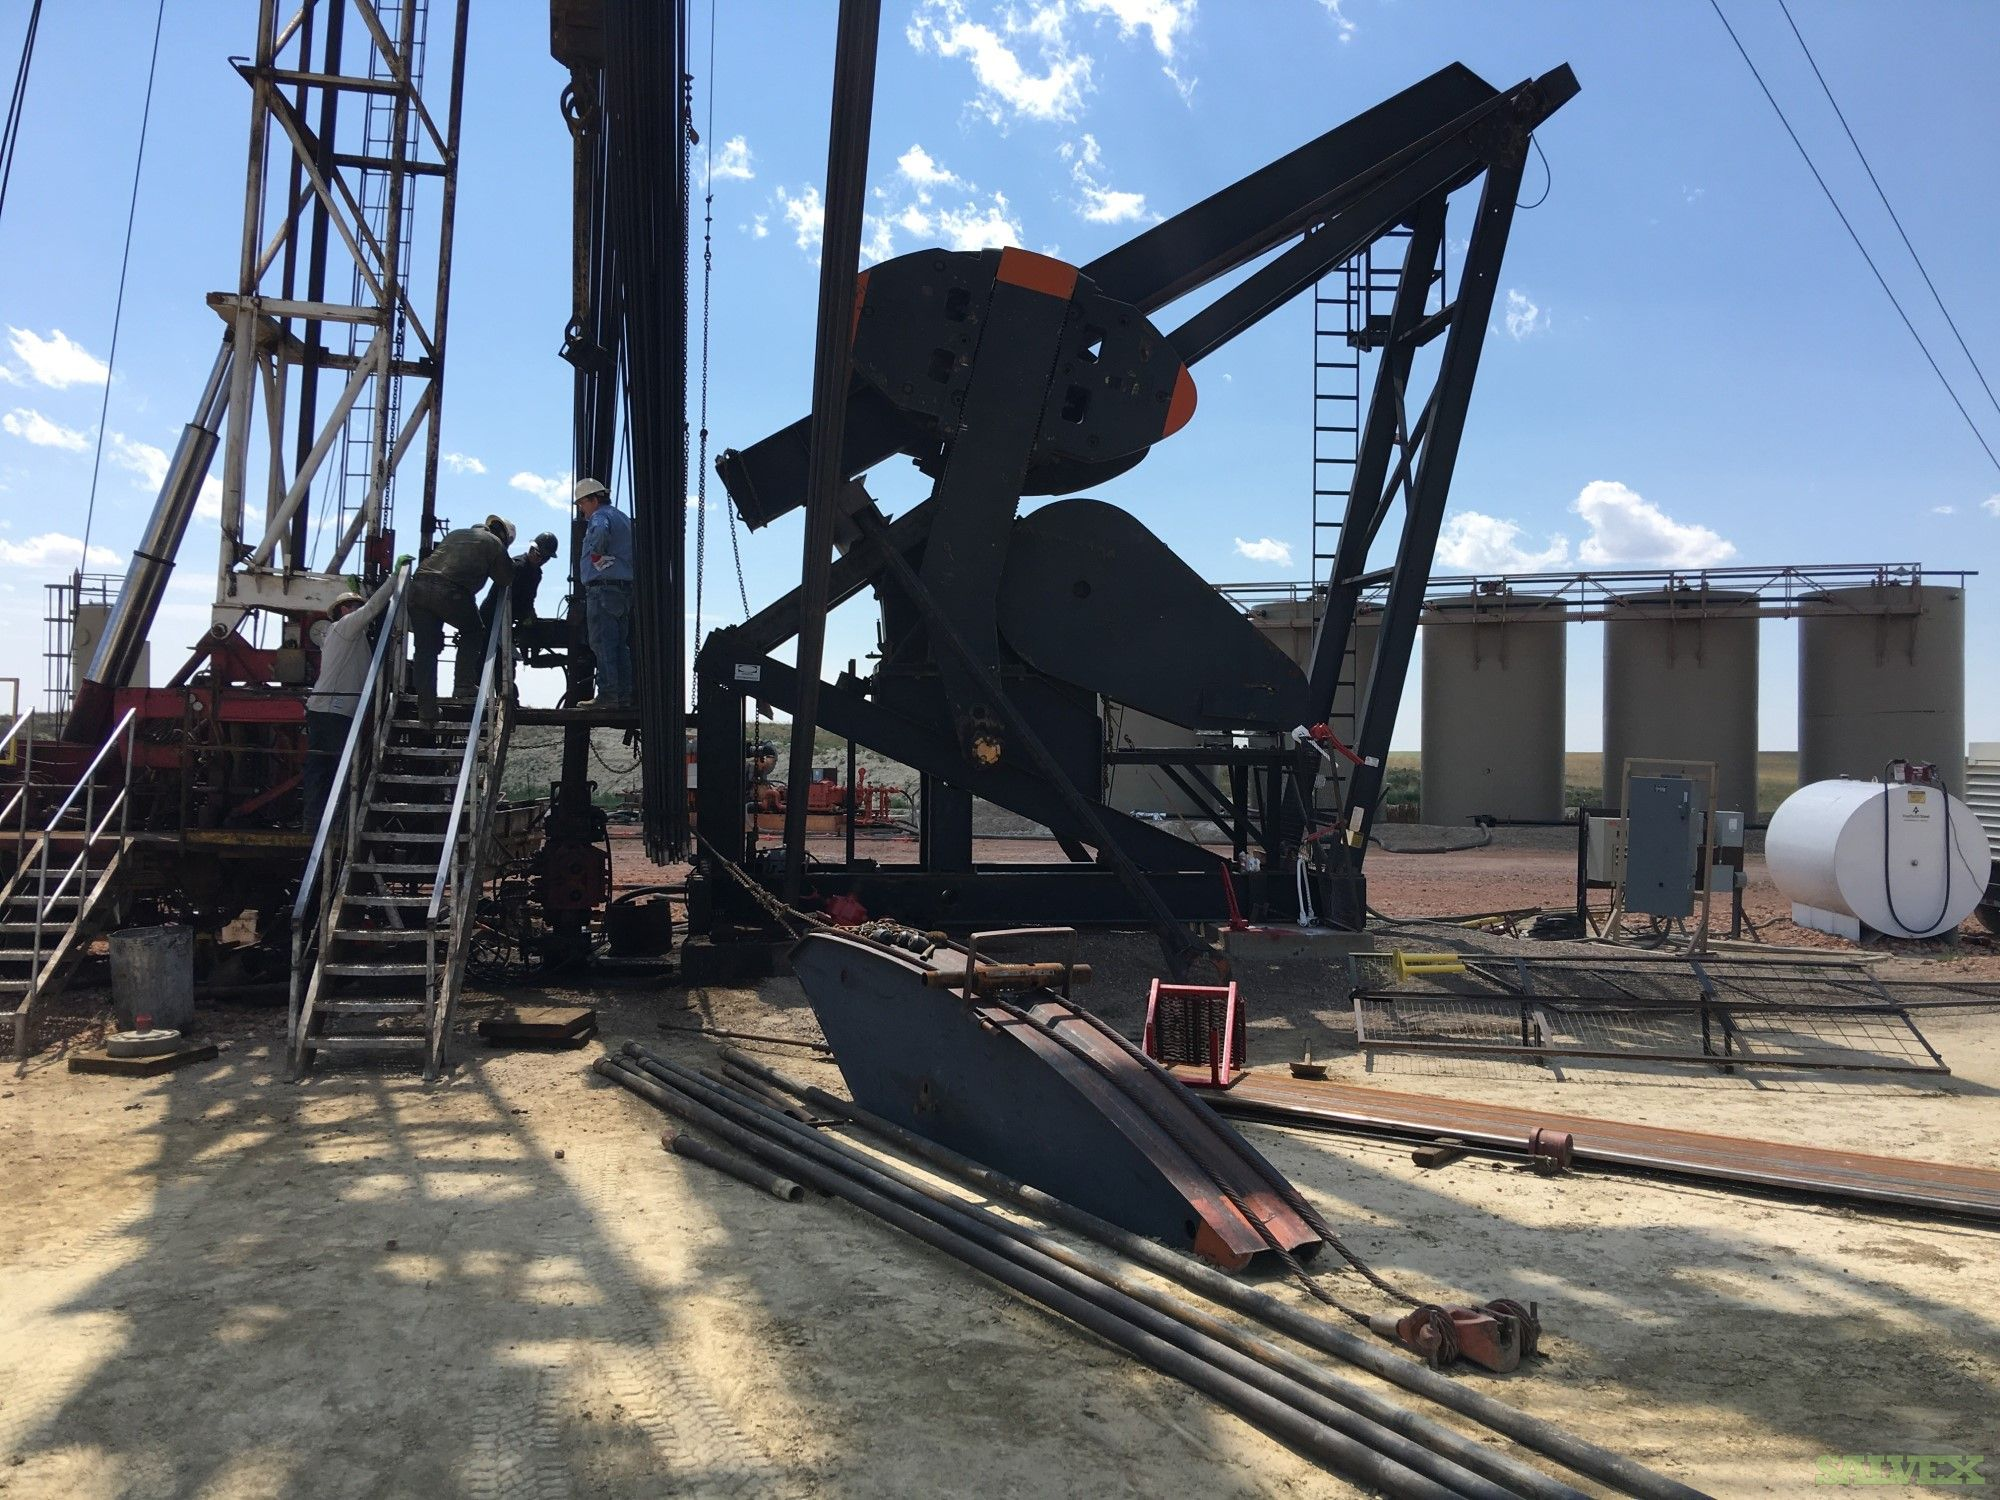 Production Set Lufkin 640D Pumping Unit with 2 7/8 Tubings , Rods, Tanks & More (9,500 Ft Well) (1 Unit)